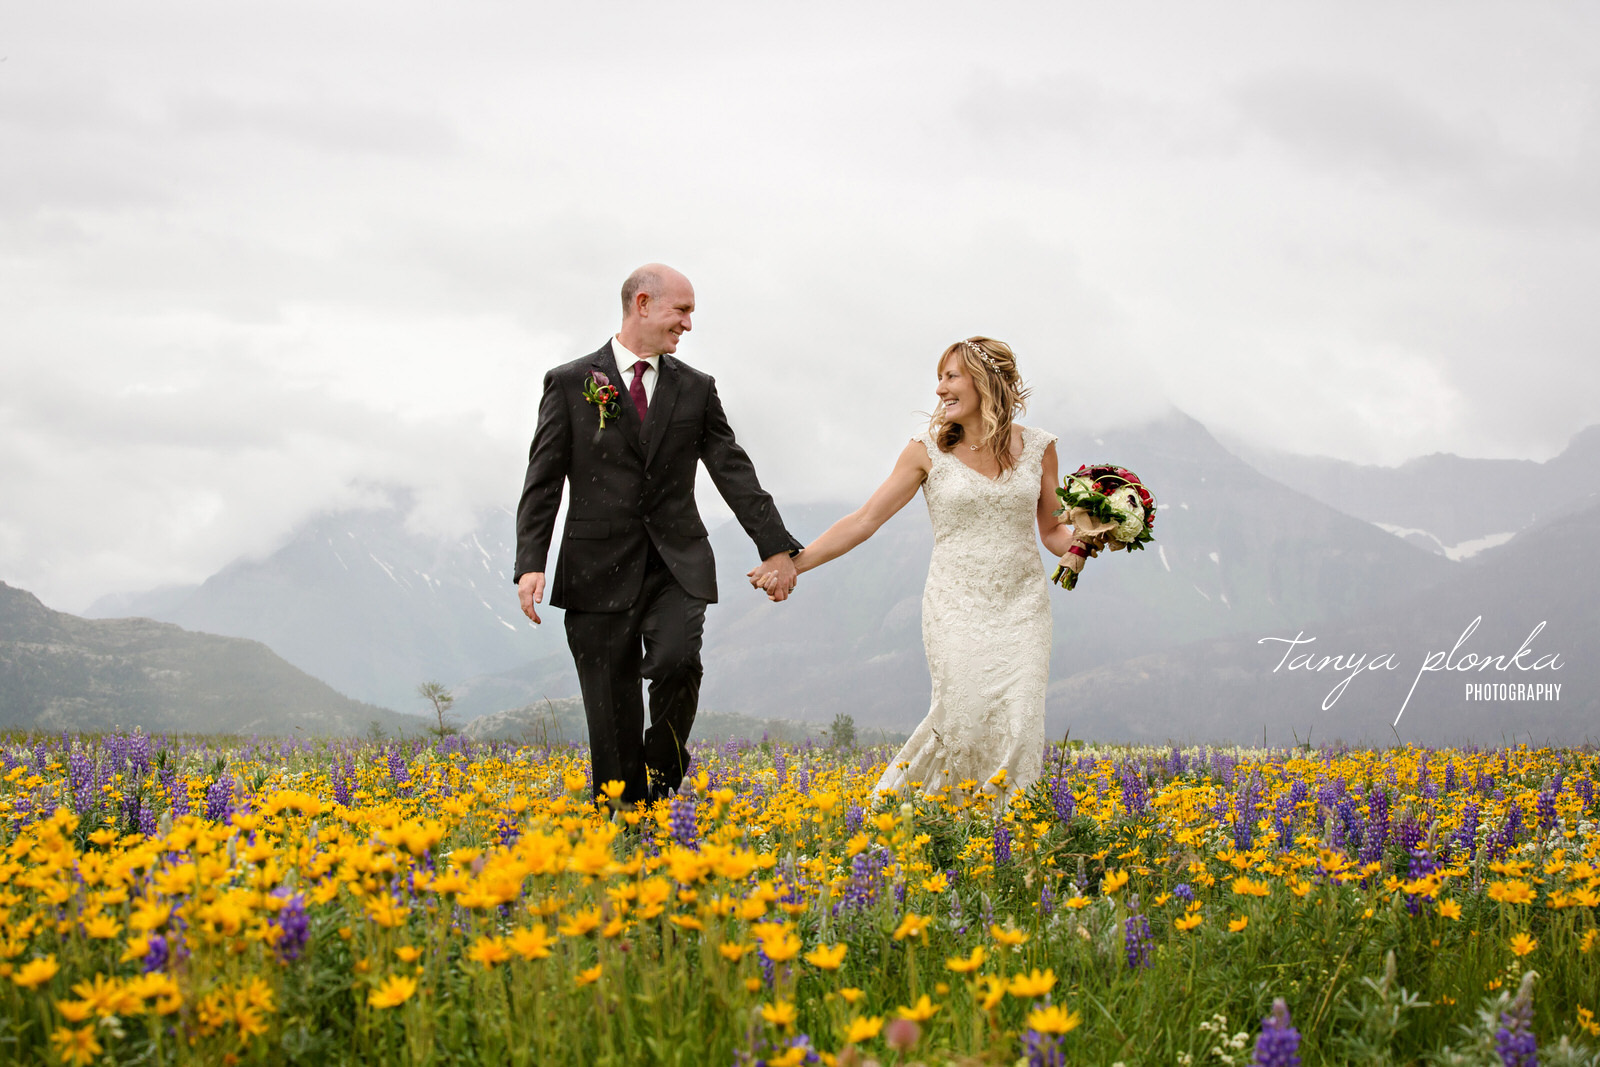 groom and bride walk through field of yellow and purple wildflowers with mountains in background while holding hands